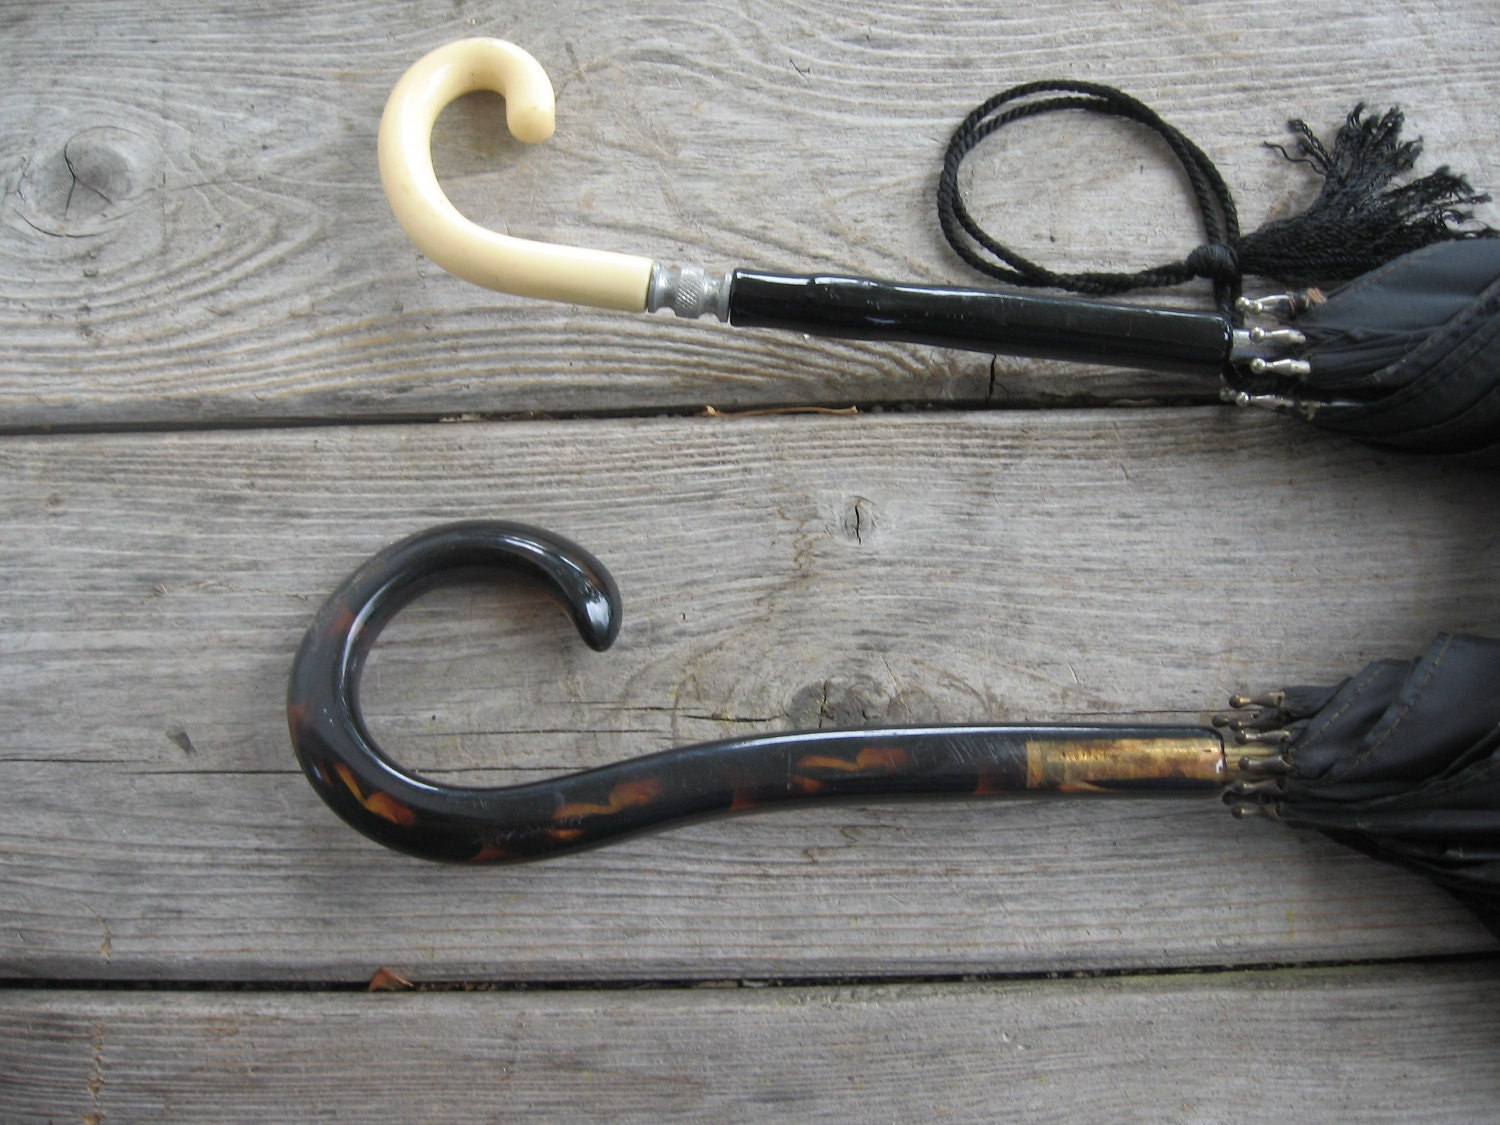 Pair of Vintage Black Umbrellas Bakelite Handles